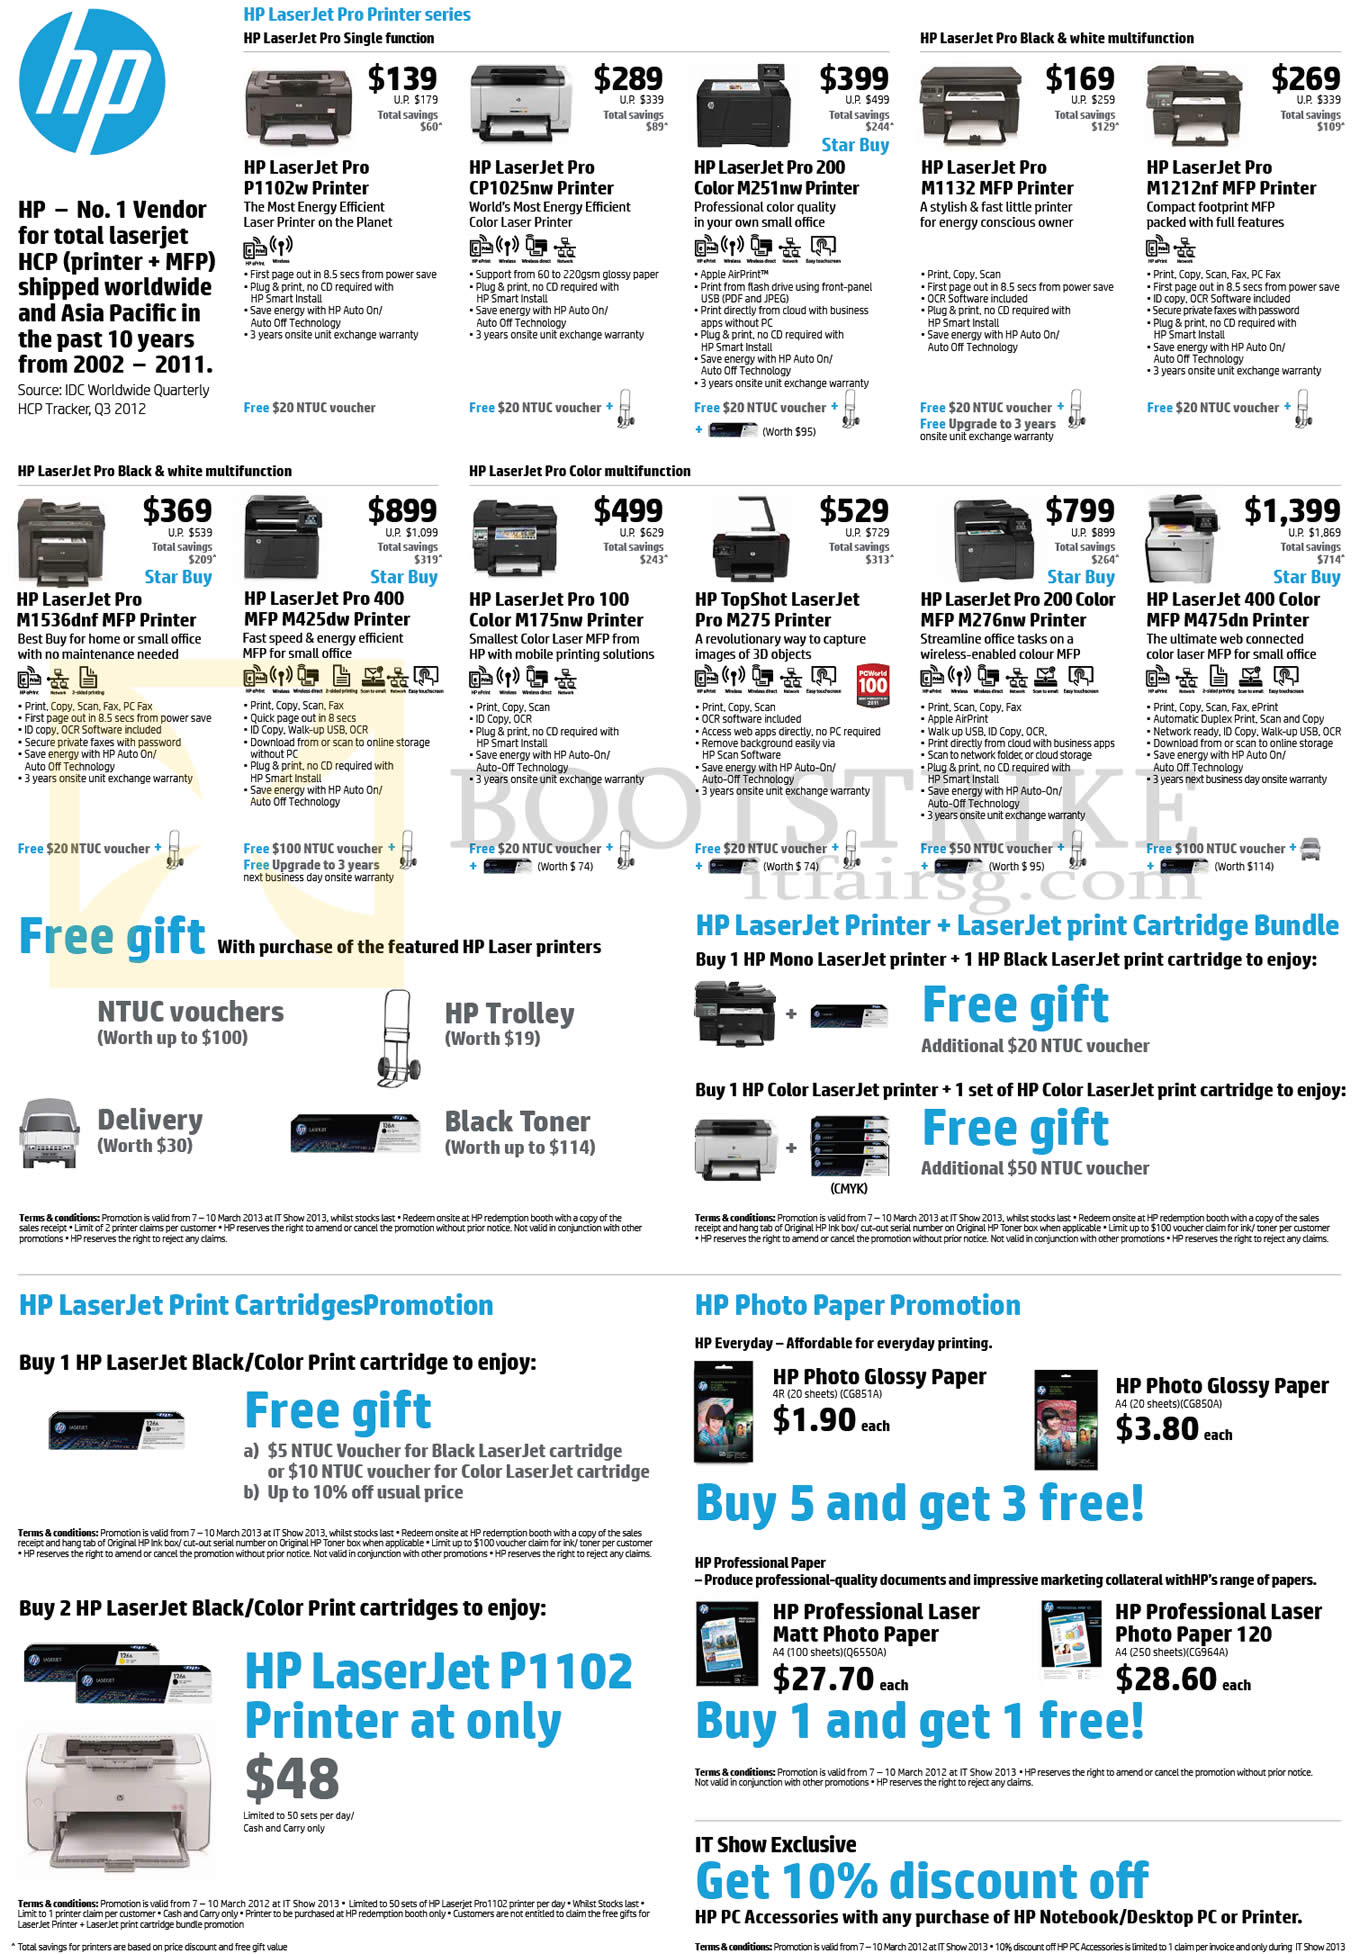 IT SHOW 2013 price list image brochure of HP Printers Laser Laserjet Pro P1102W, CP1025nw, M1132, M1212nf, M1536dnf, M425dw, M175nw, M275, M276nw, M475dn